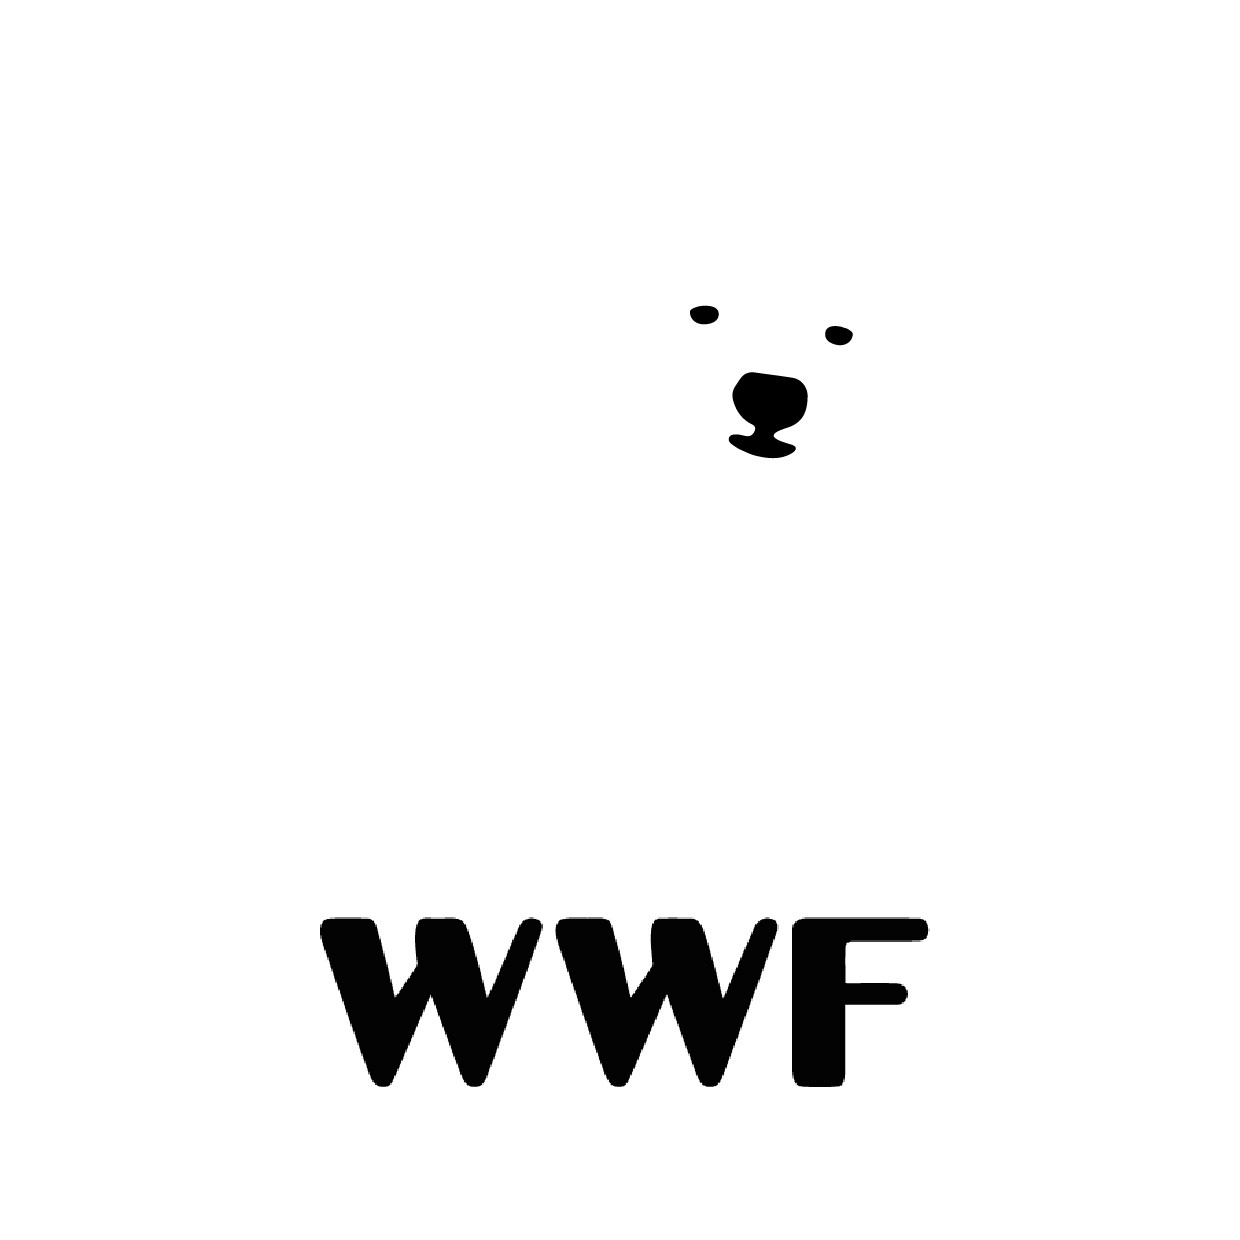 As the giant panda is removed from the endangered species list inception in 1961 wwf has existed under its panda logo symbolising the organisations commitment to protecting the worlds most endangered species biocorpaavc Image collections